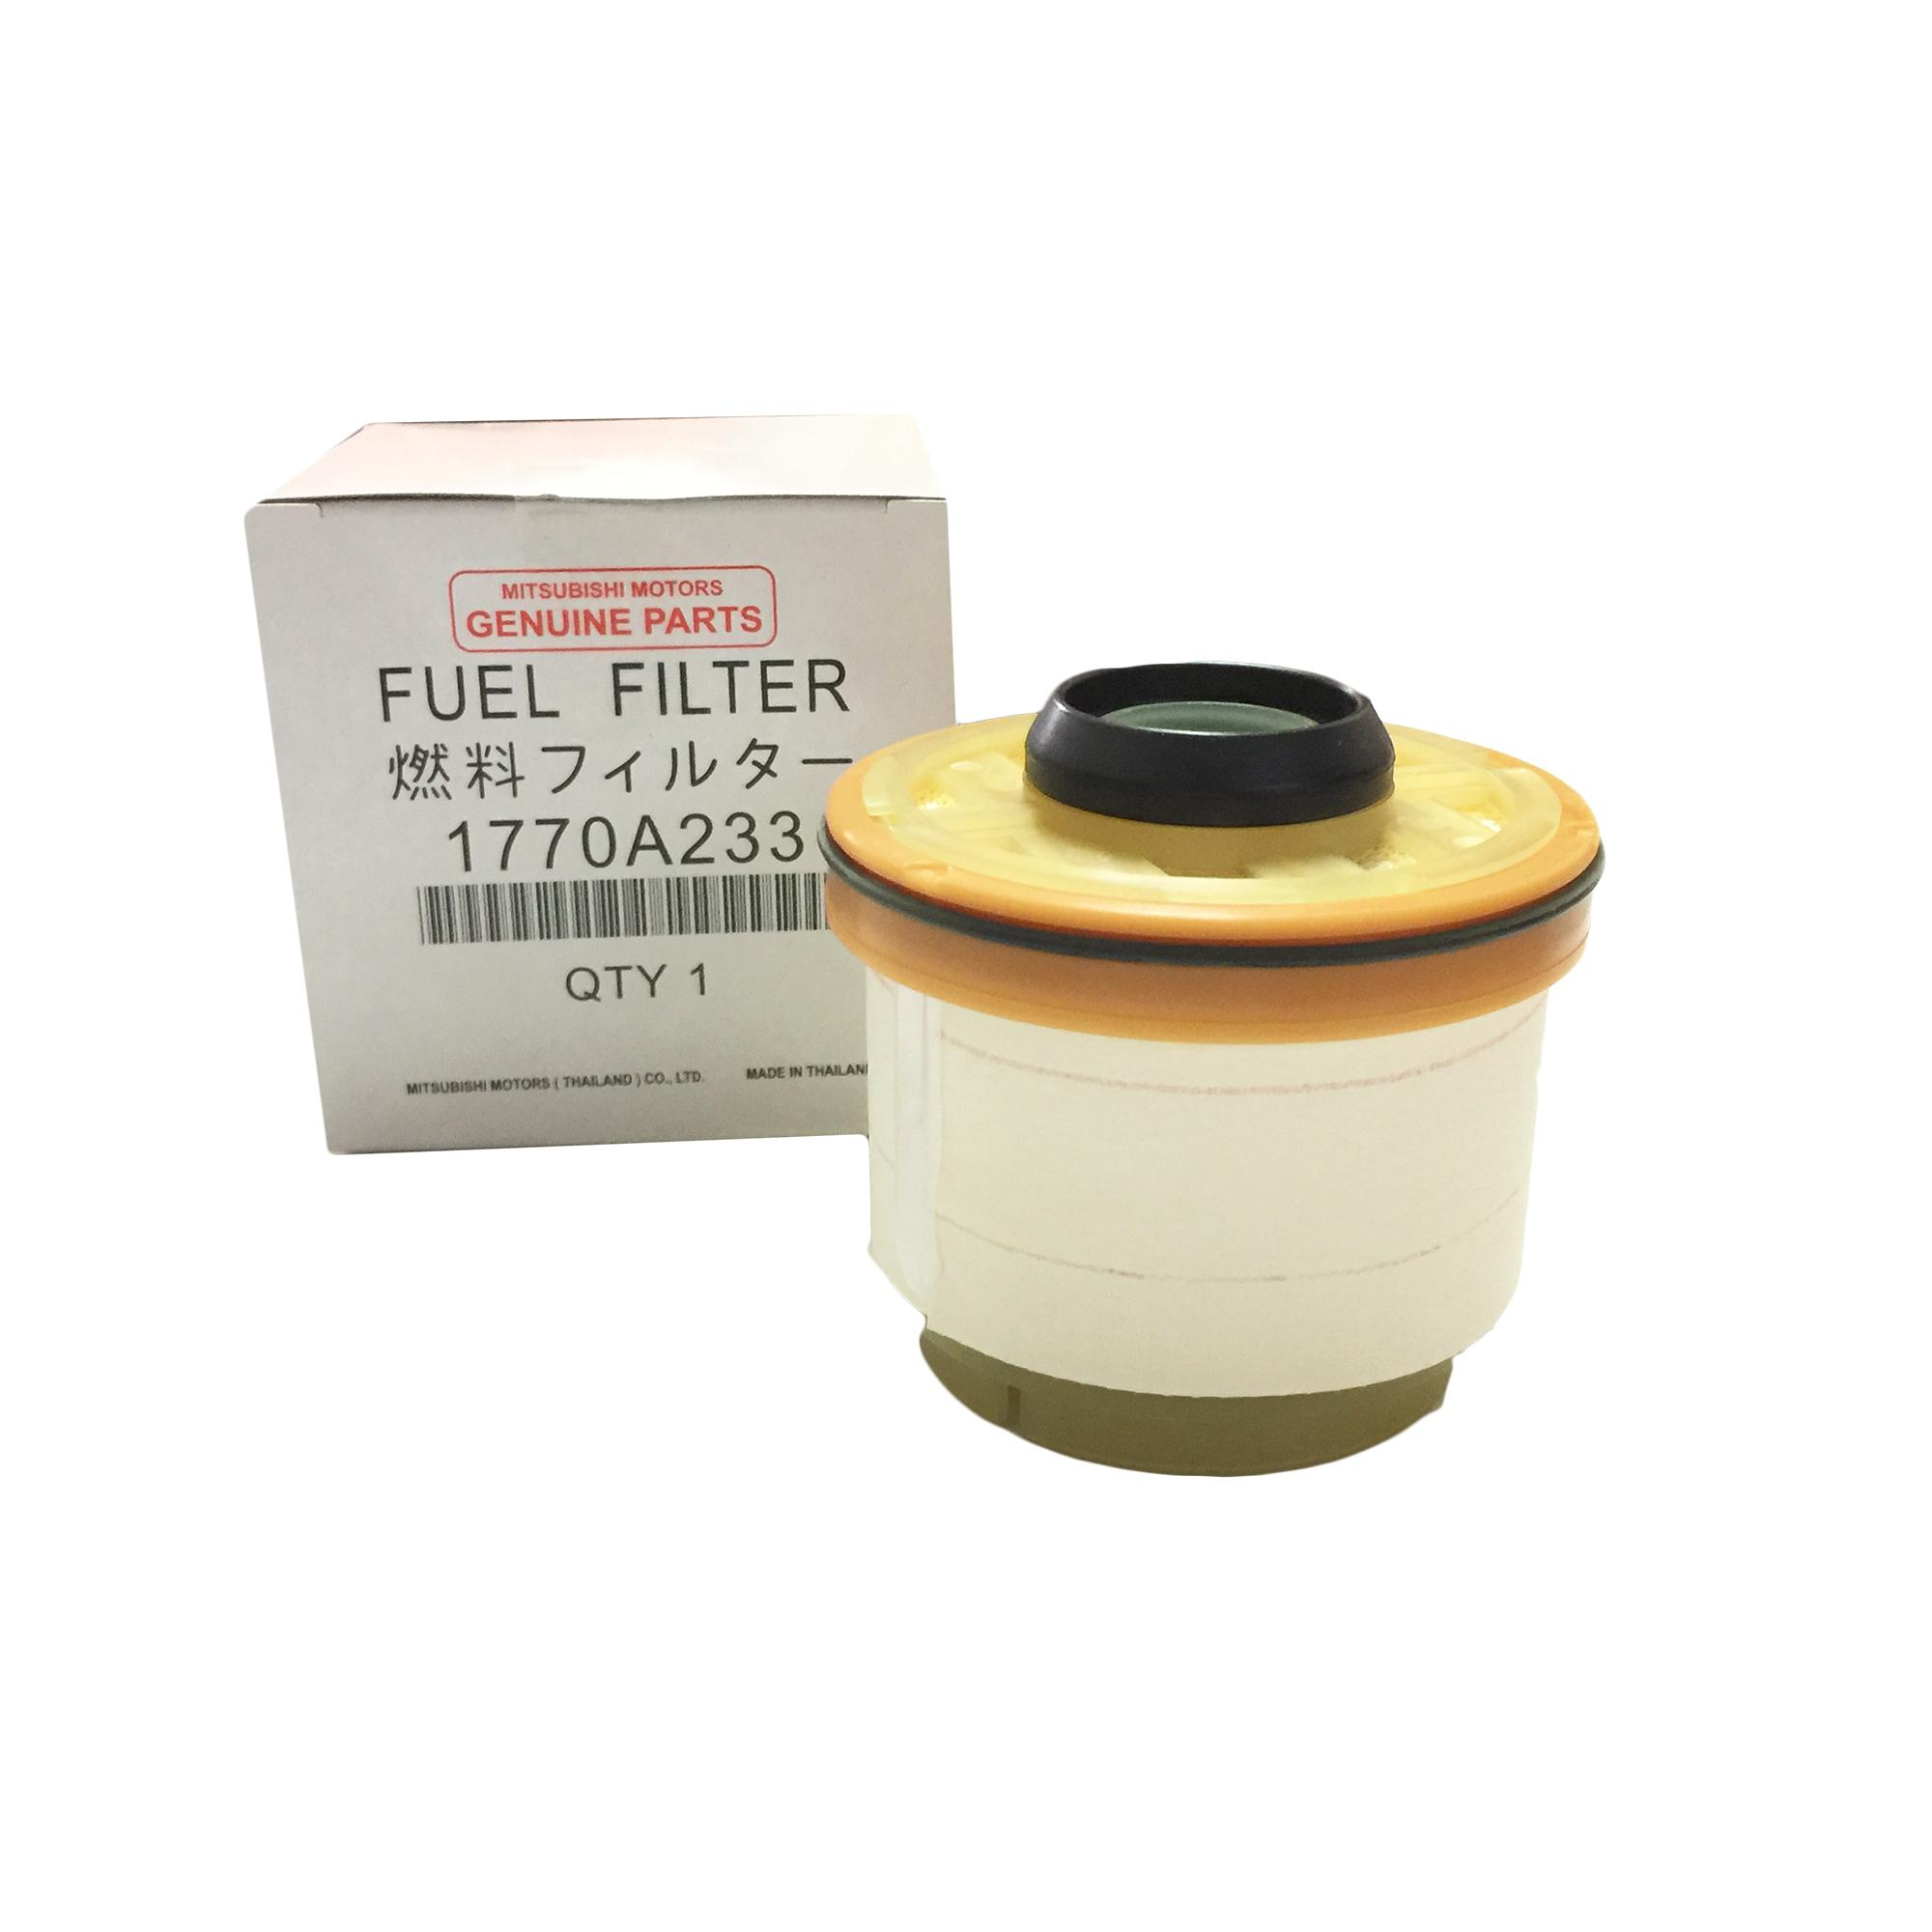 Fuel Filter For Sale Gas Online Brands Prices Reviews In 2011 Ford F 250 Cap Genuine Mitsubishi Auto Parts 1770a233 Montero 2013 2018